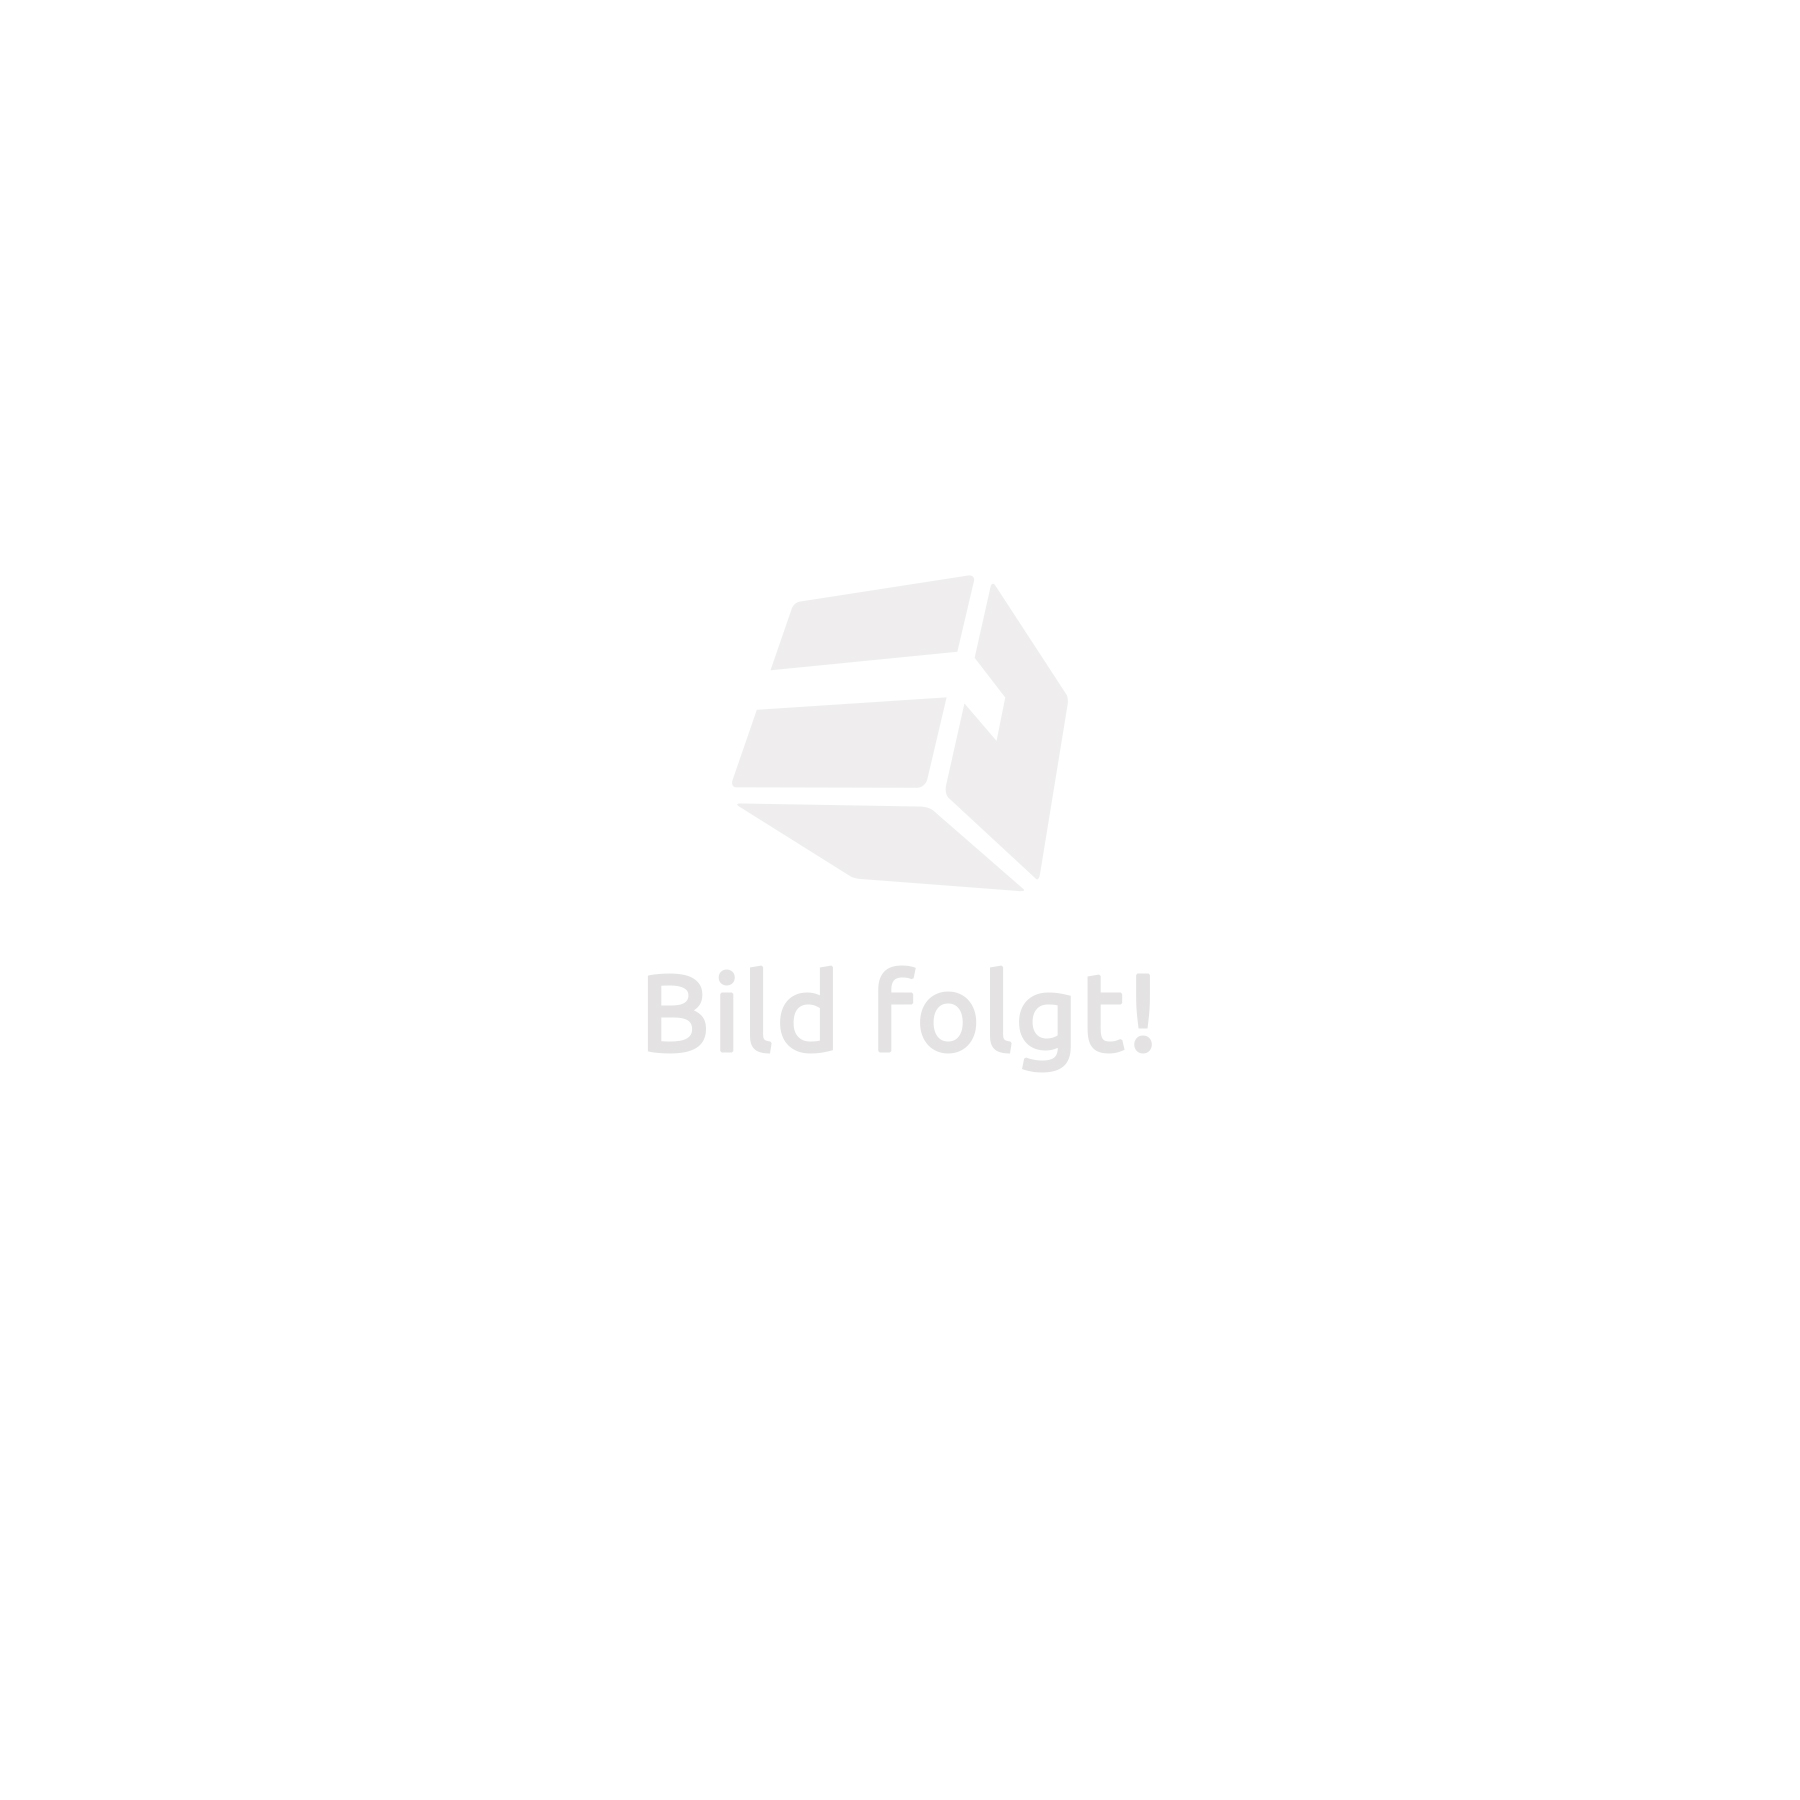 Shoe rack bamboo with bench